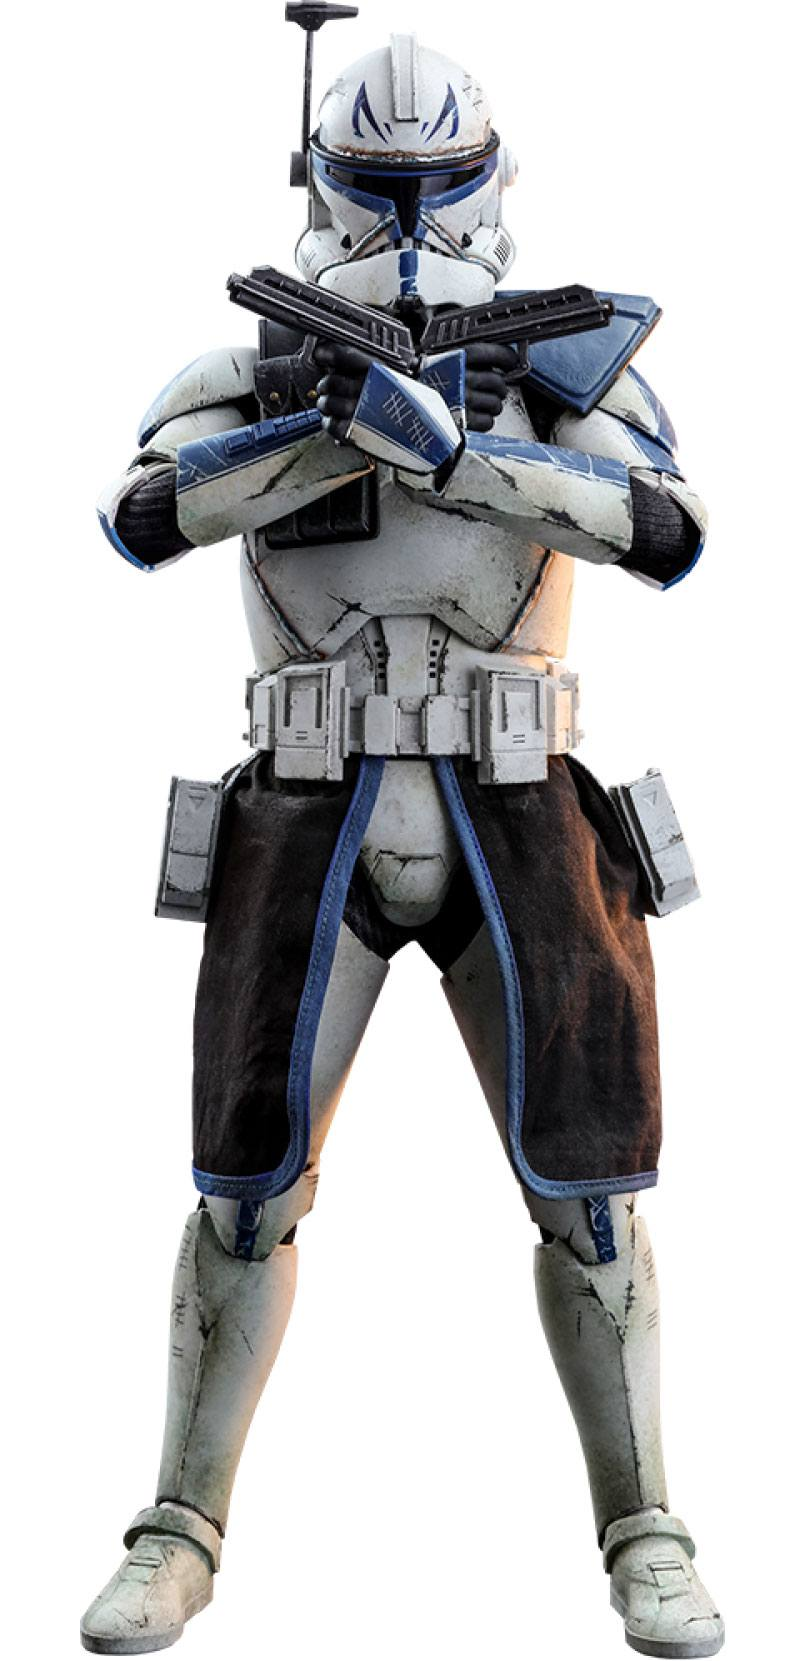 Hot Toys Star Wars Clone Wars Captain Rex 1/6 Action Figure